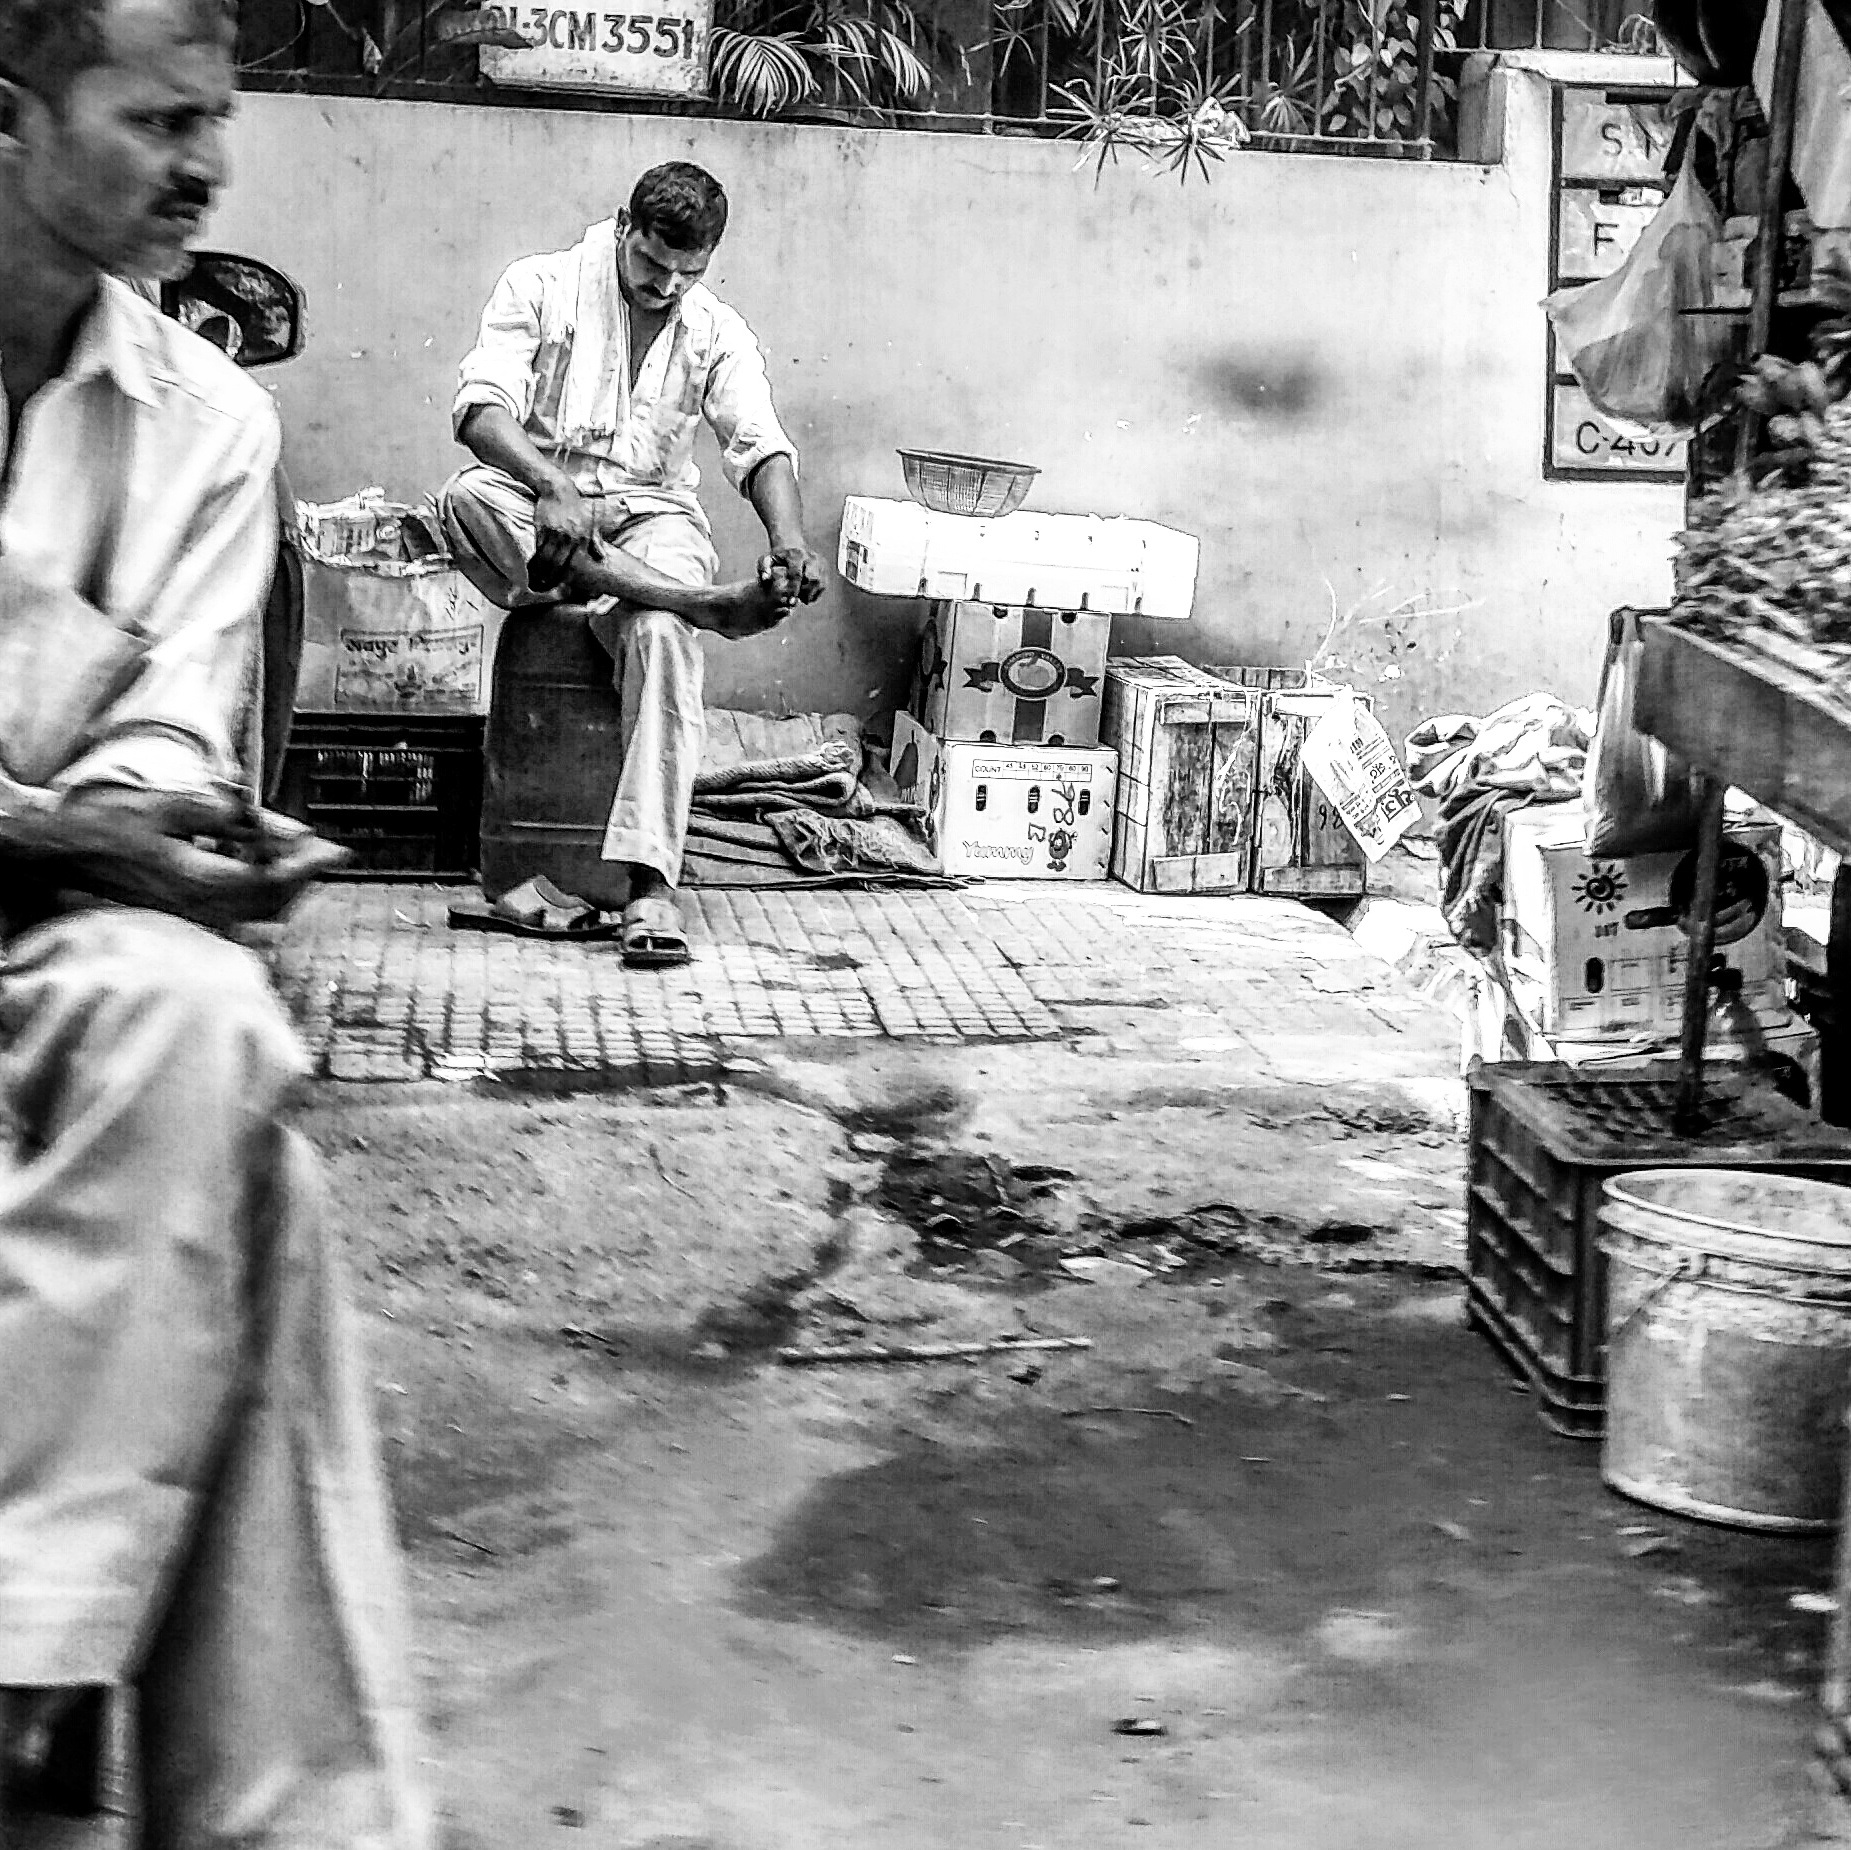 A fruit-seller presses his own legs while another man looks on in the Chittaranjan Park area of South Delhi